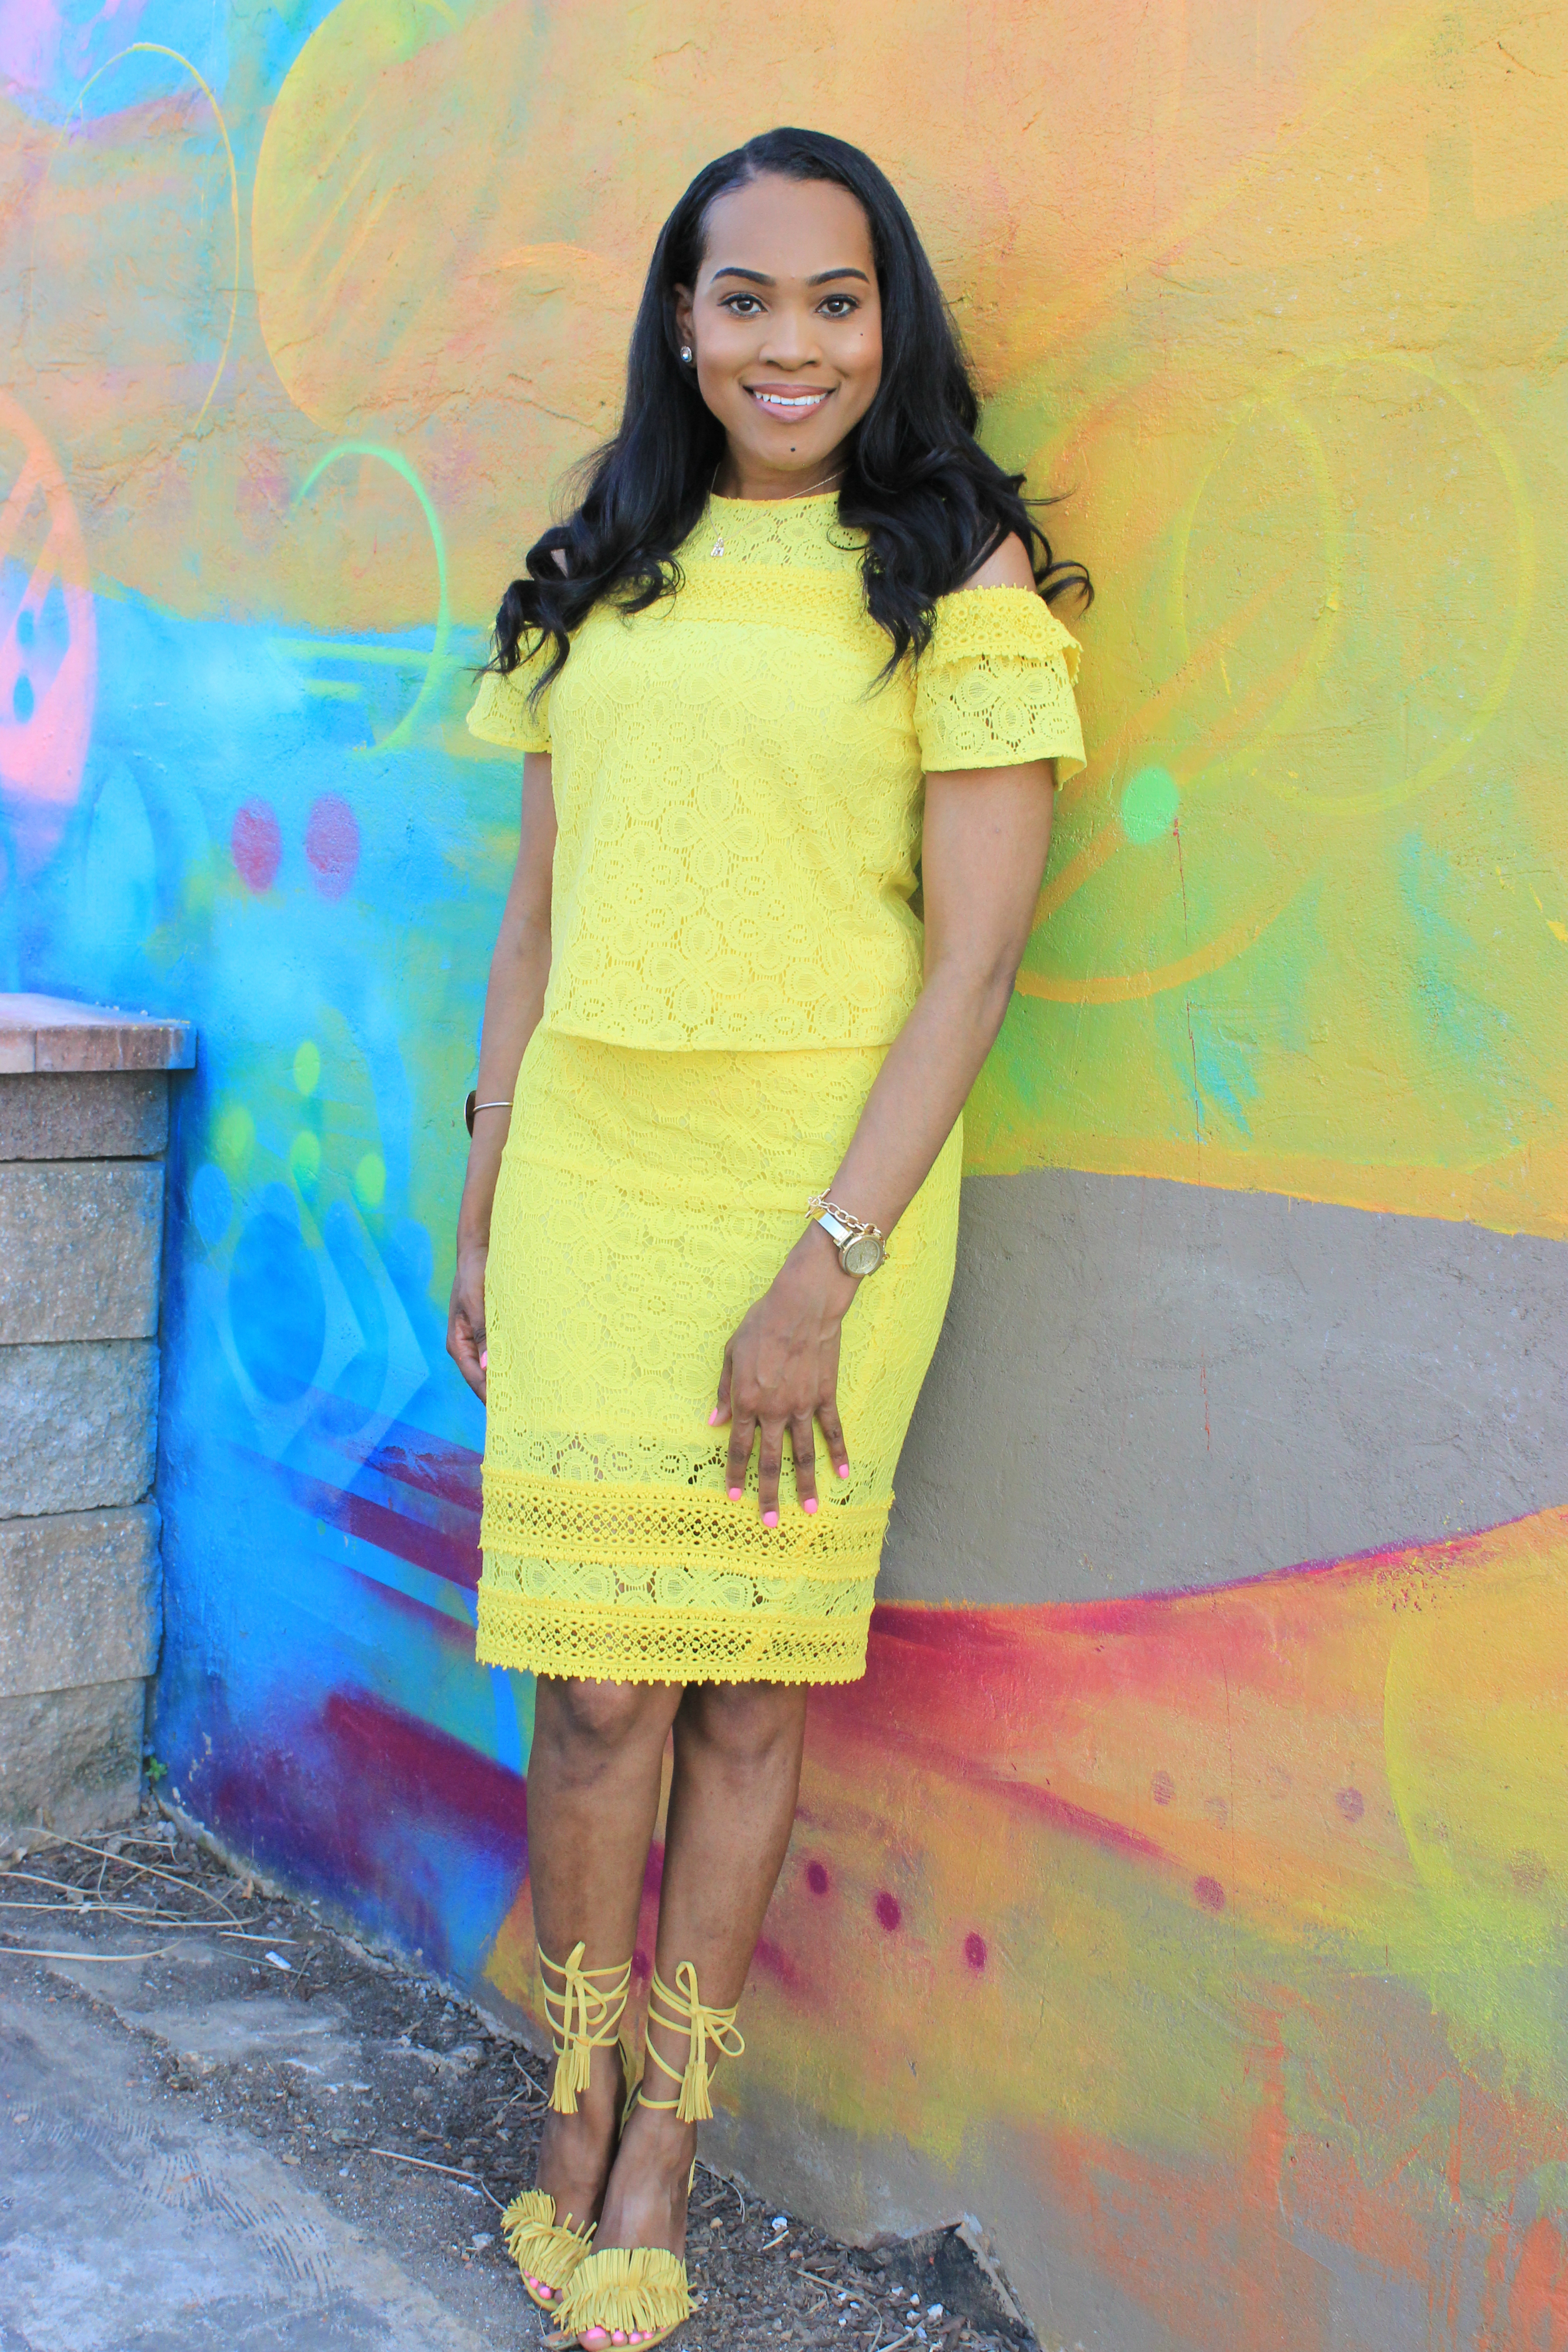 Style-files-JCPenney-Project- Runway Cold -Shoulder-Lace -Top-yellow-lace-pencil-skirt-yellow-fringe-justfab-sandals-Birmingham blogger-top-Birmingham-blogger-oohlalablog-6